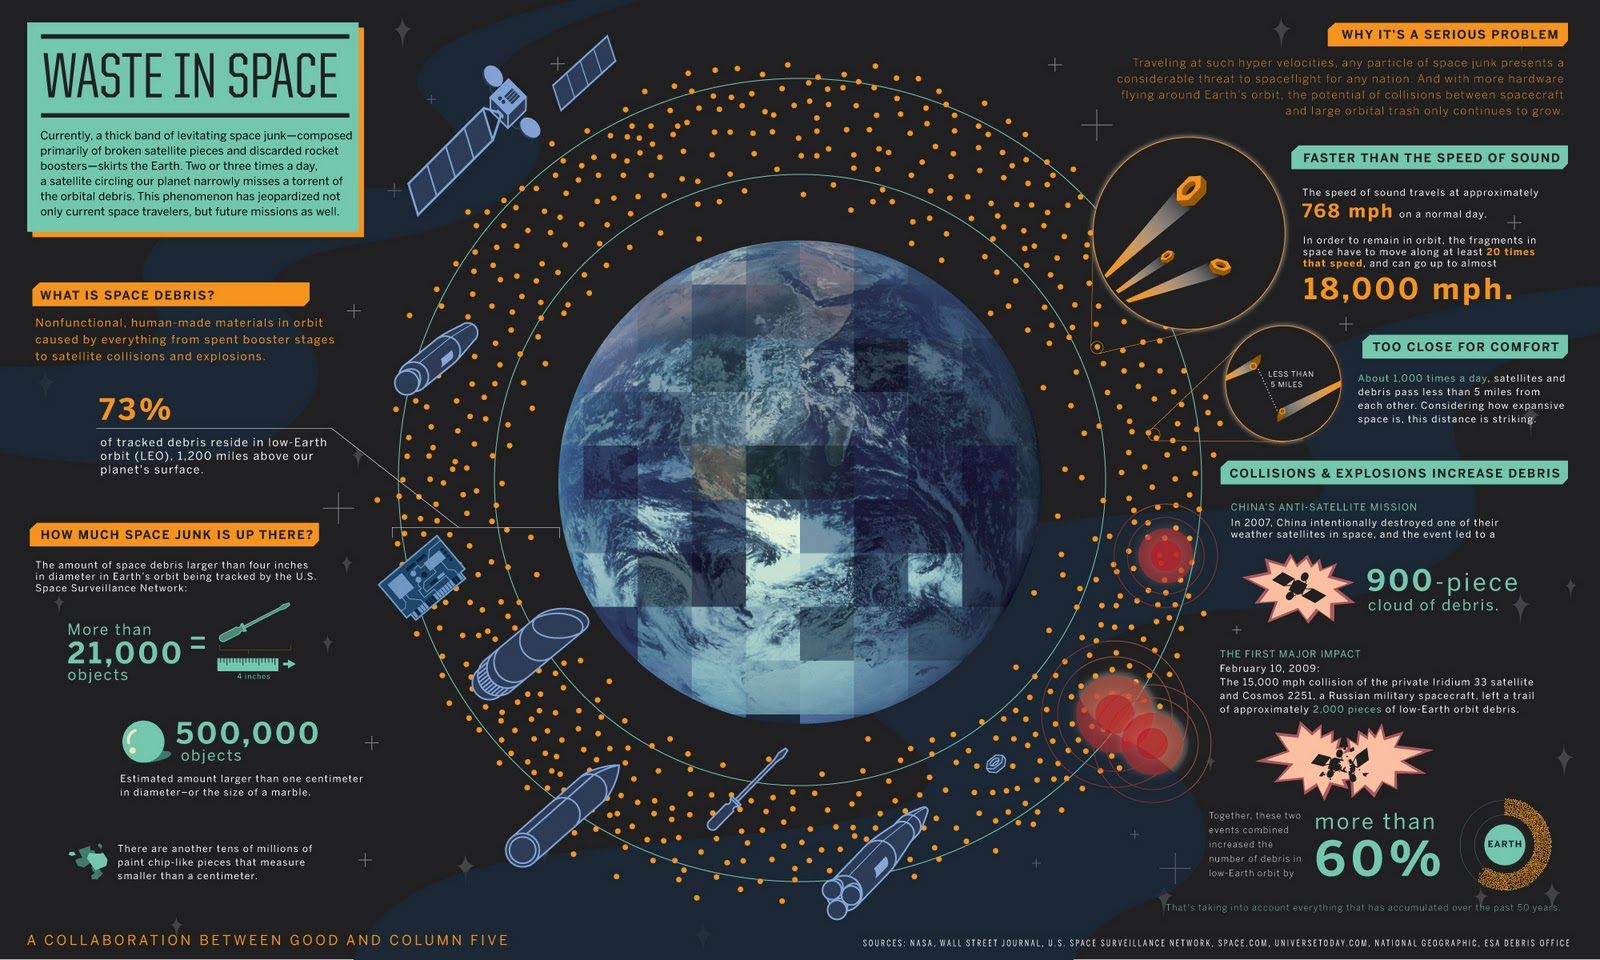 Using the moon to inspect space debris